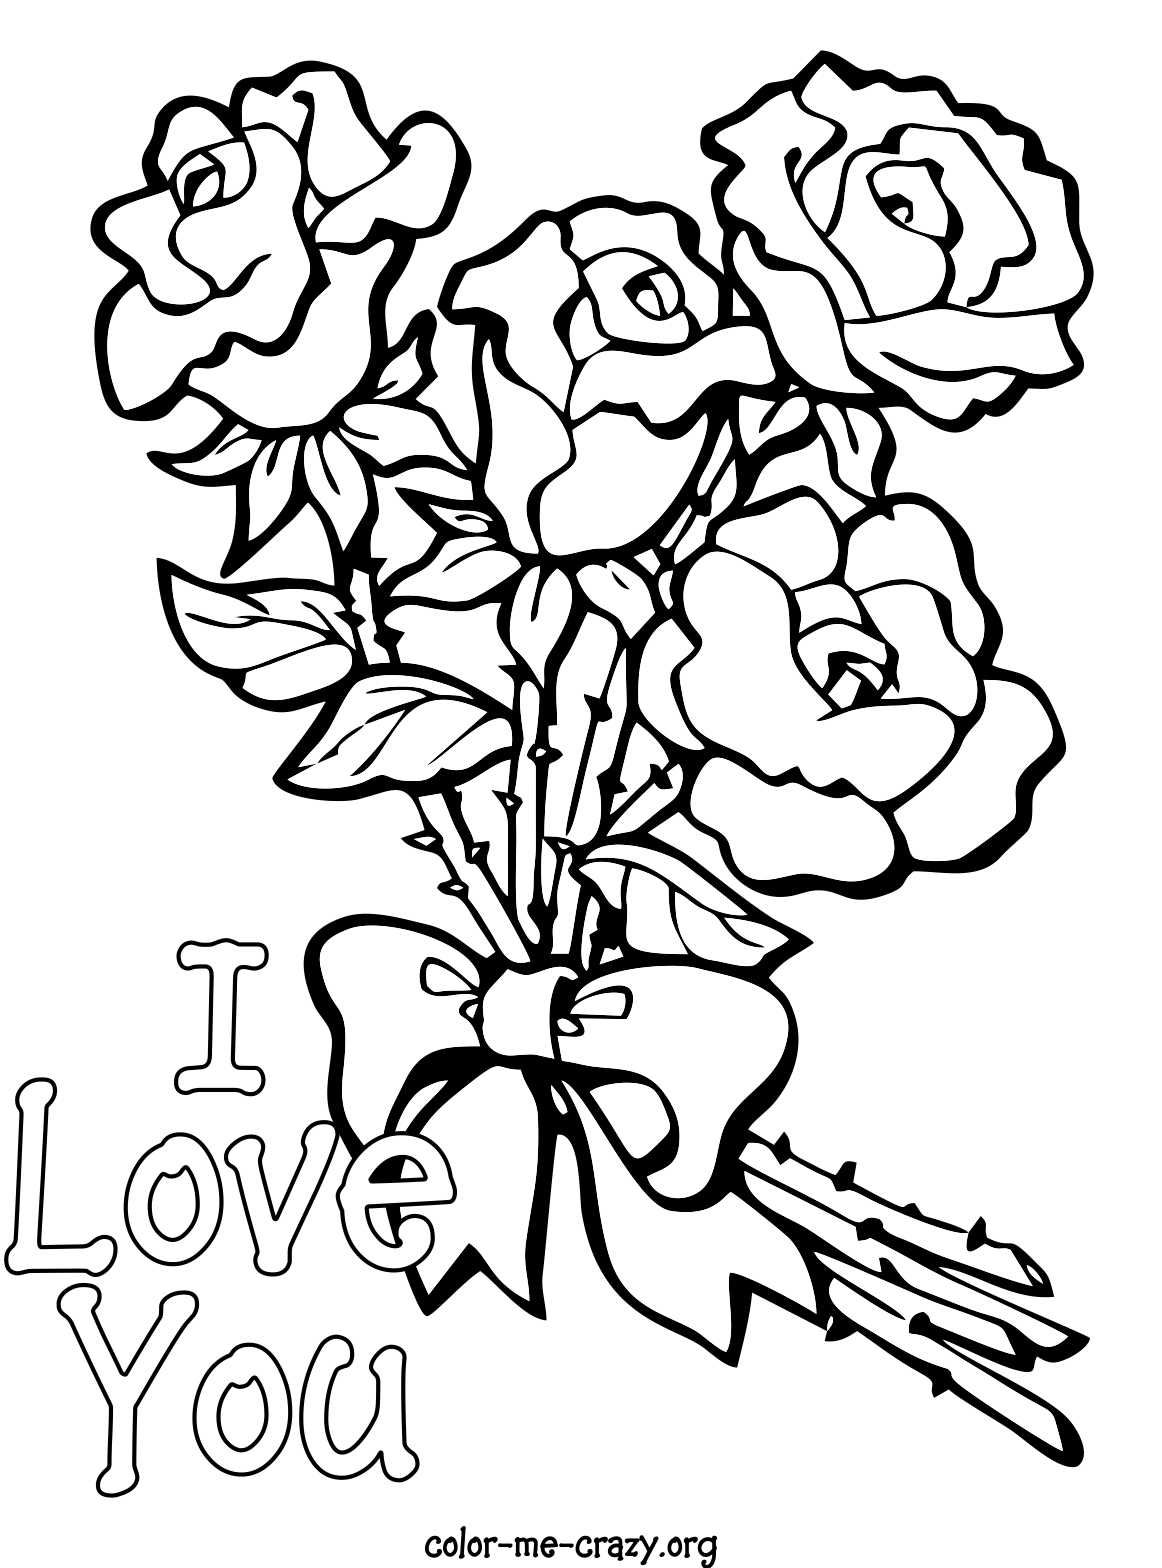 Image Detail For Colormecrazy Org Valentine Coloring Pages Valentine Coloring Pages Rose Coloring Pages Mothers Day Coloring Pages